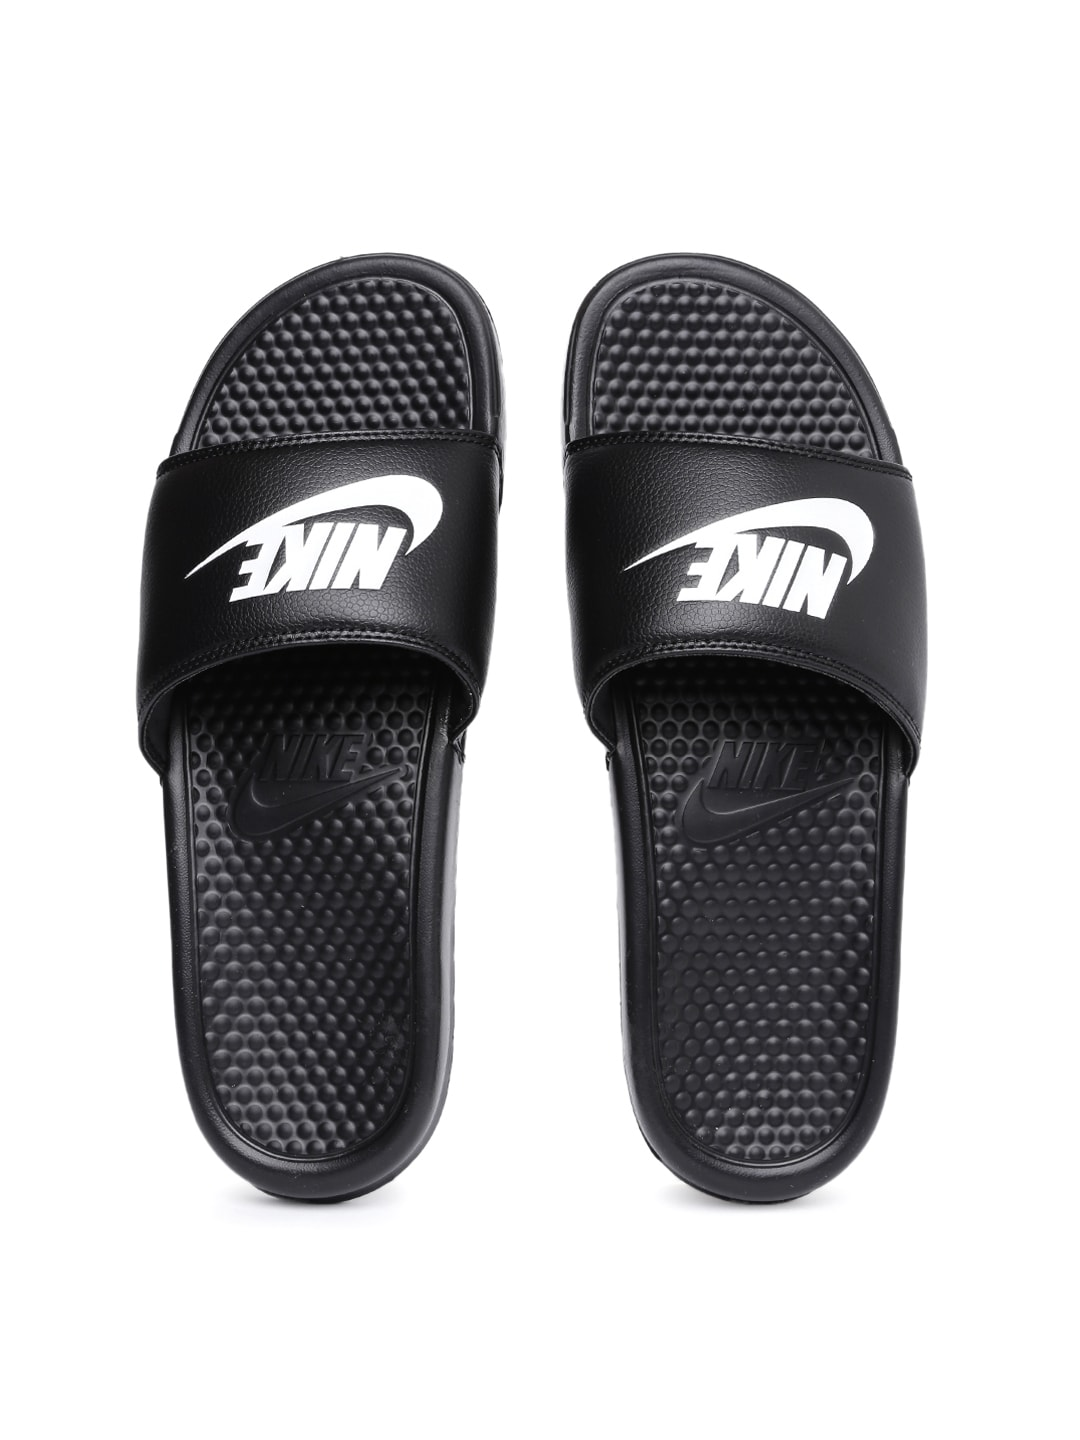 4d5aaa4f08 Flip Flops Footwear Men Nike Sandals - Buy Flip Flops Footwear Men Nike  Sandals online in India